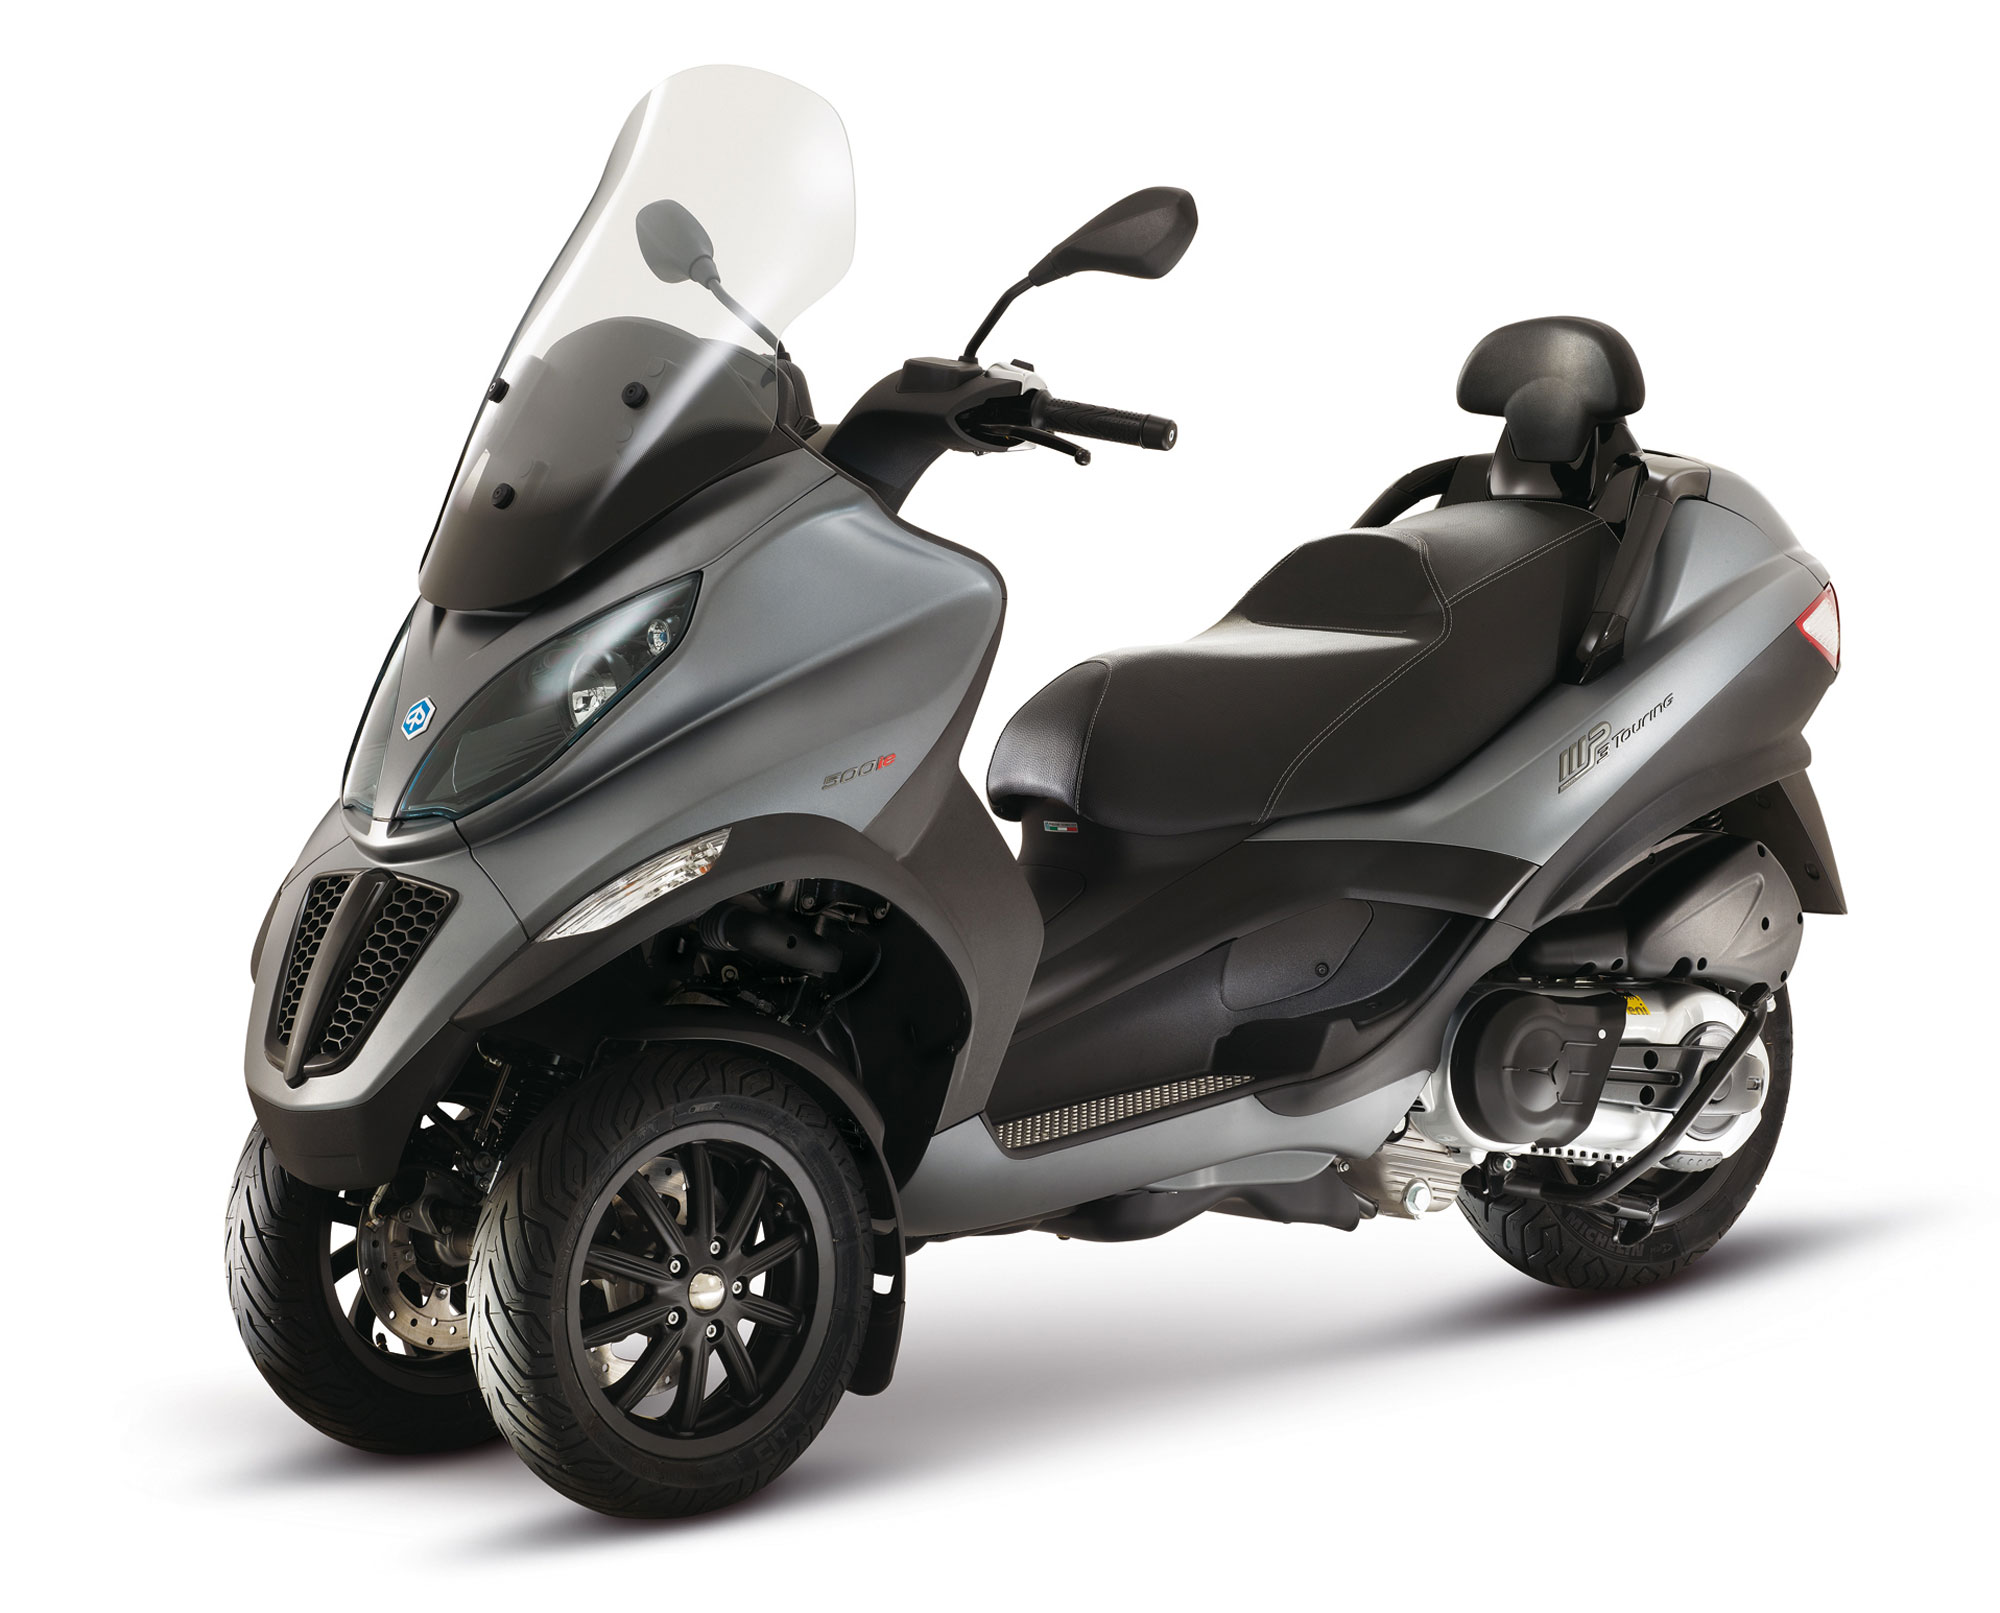 piaggio mp3 touring 500 i e sport specs 2011 2012. Black Bedroom Furniture Sets. Home Design Ideas